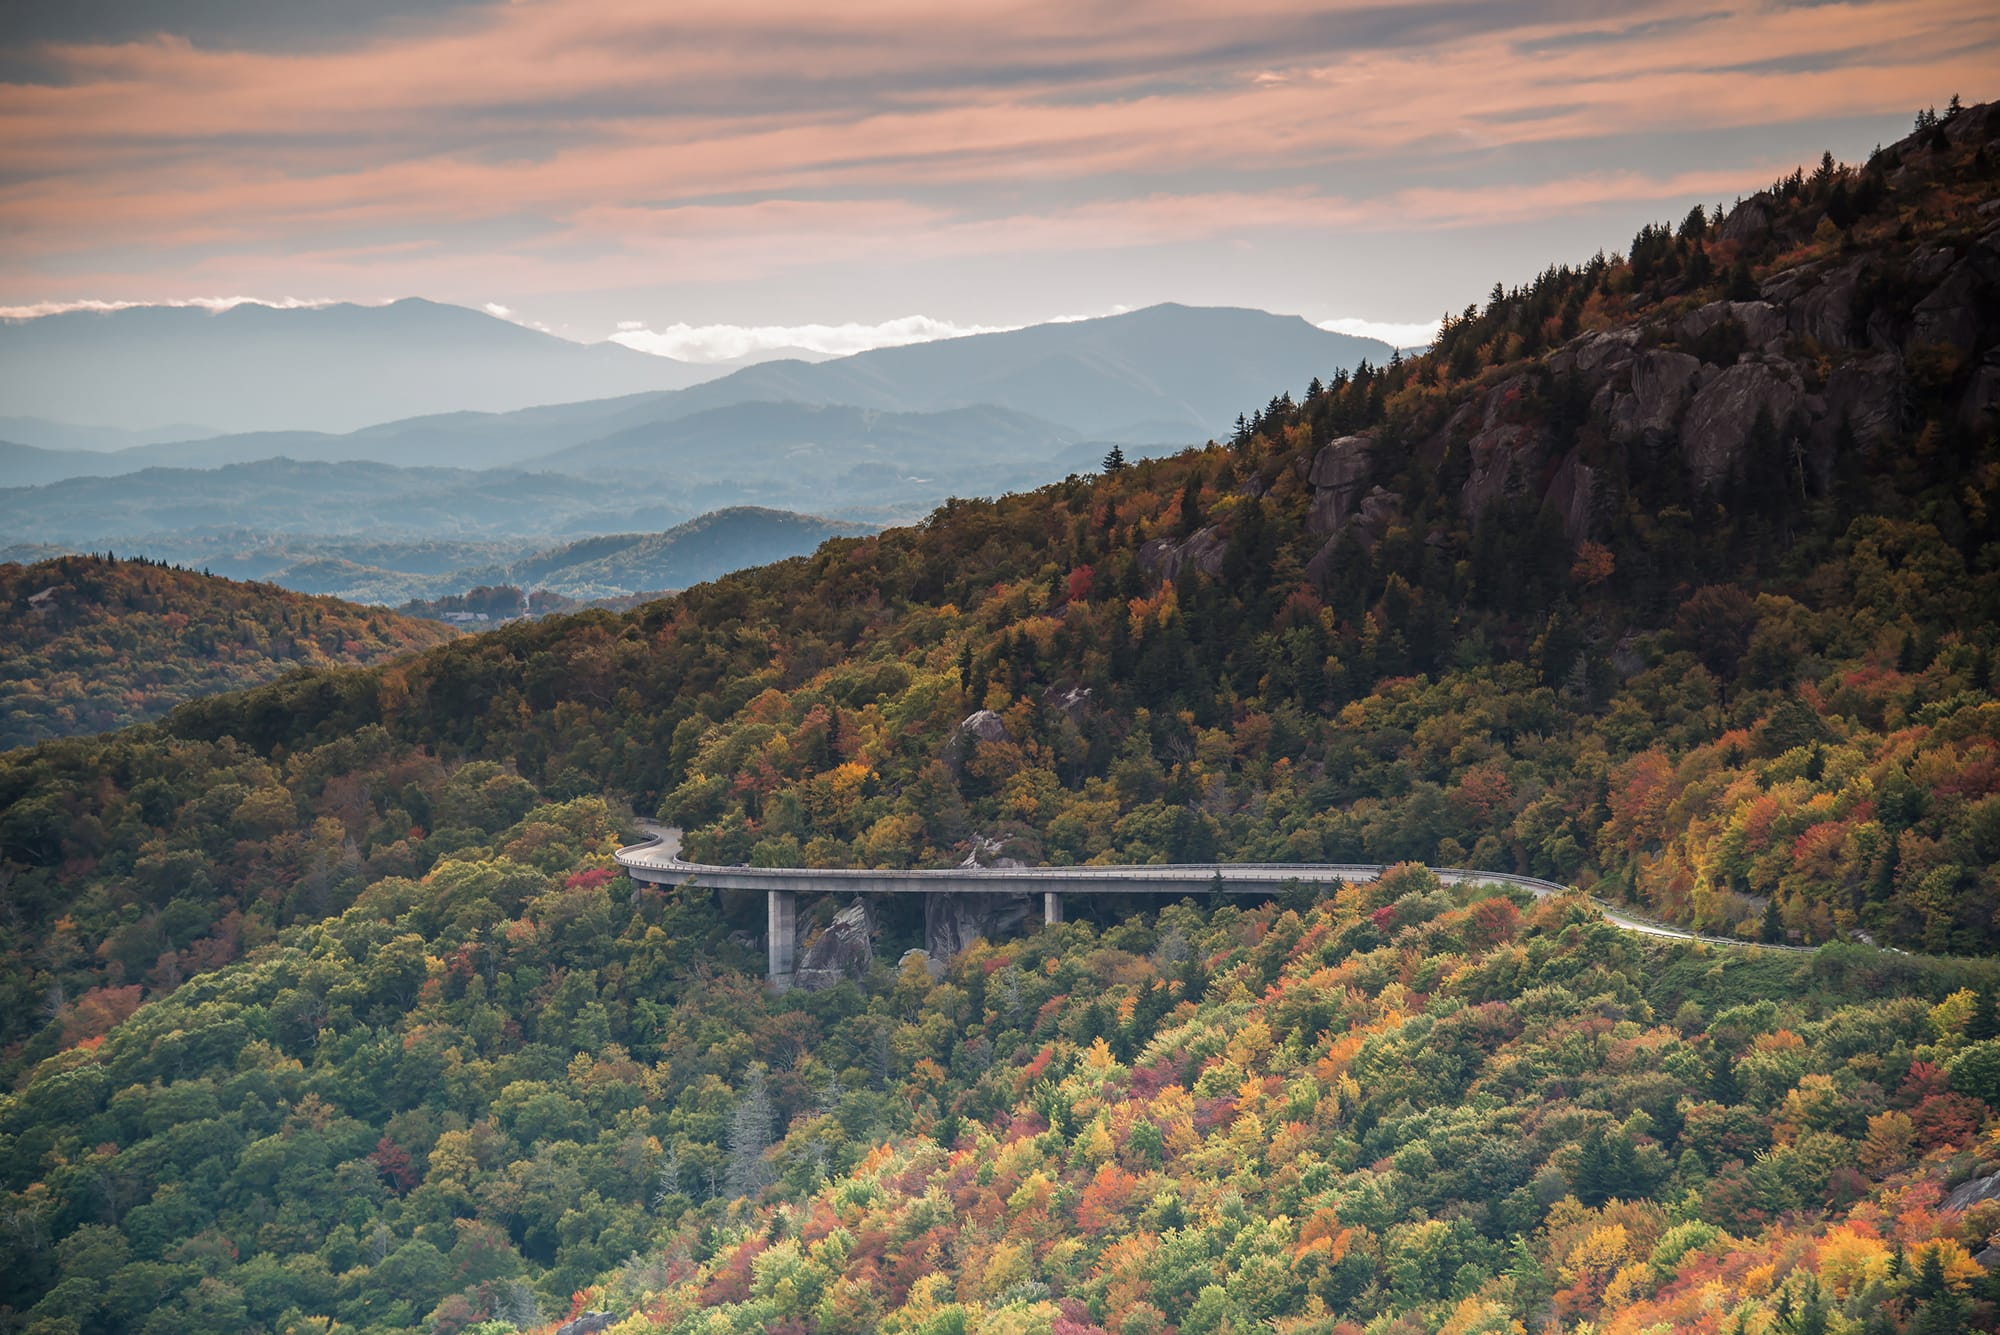 View of The Blue Ridge Parkway